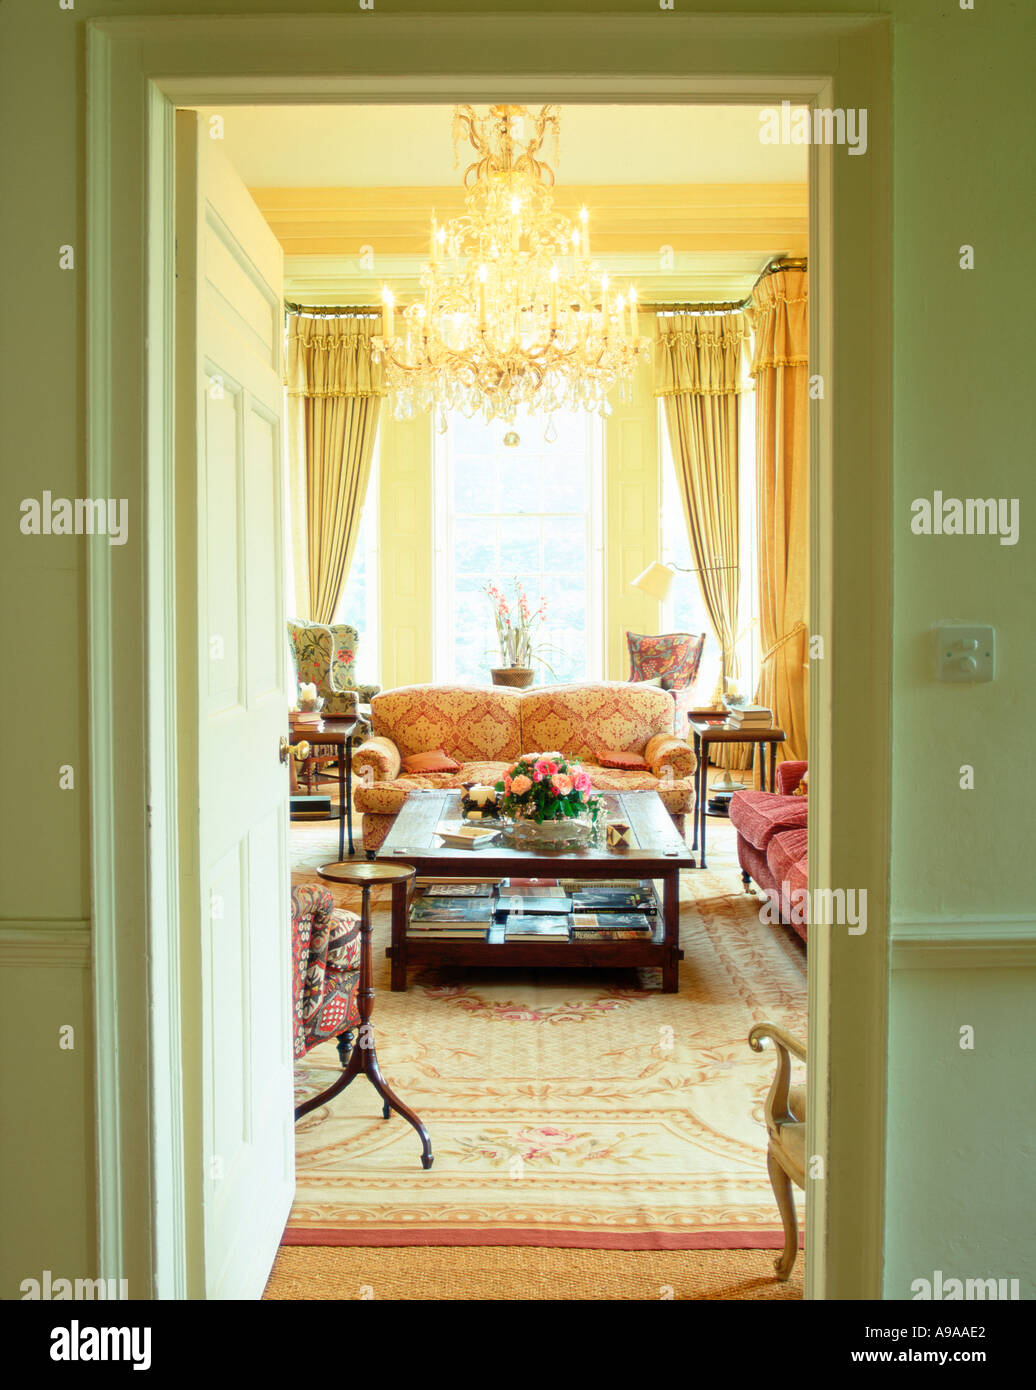 Country House Dra2wing: 18th Century Country House Stock Photos & 18th Century